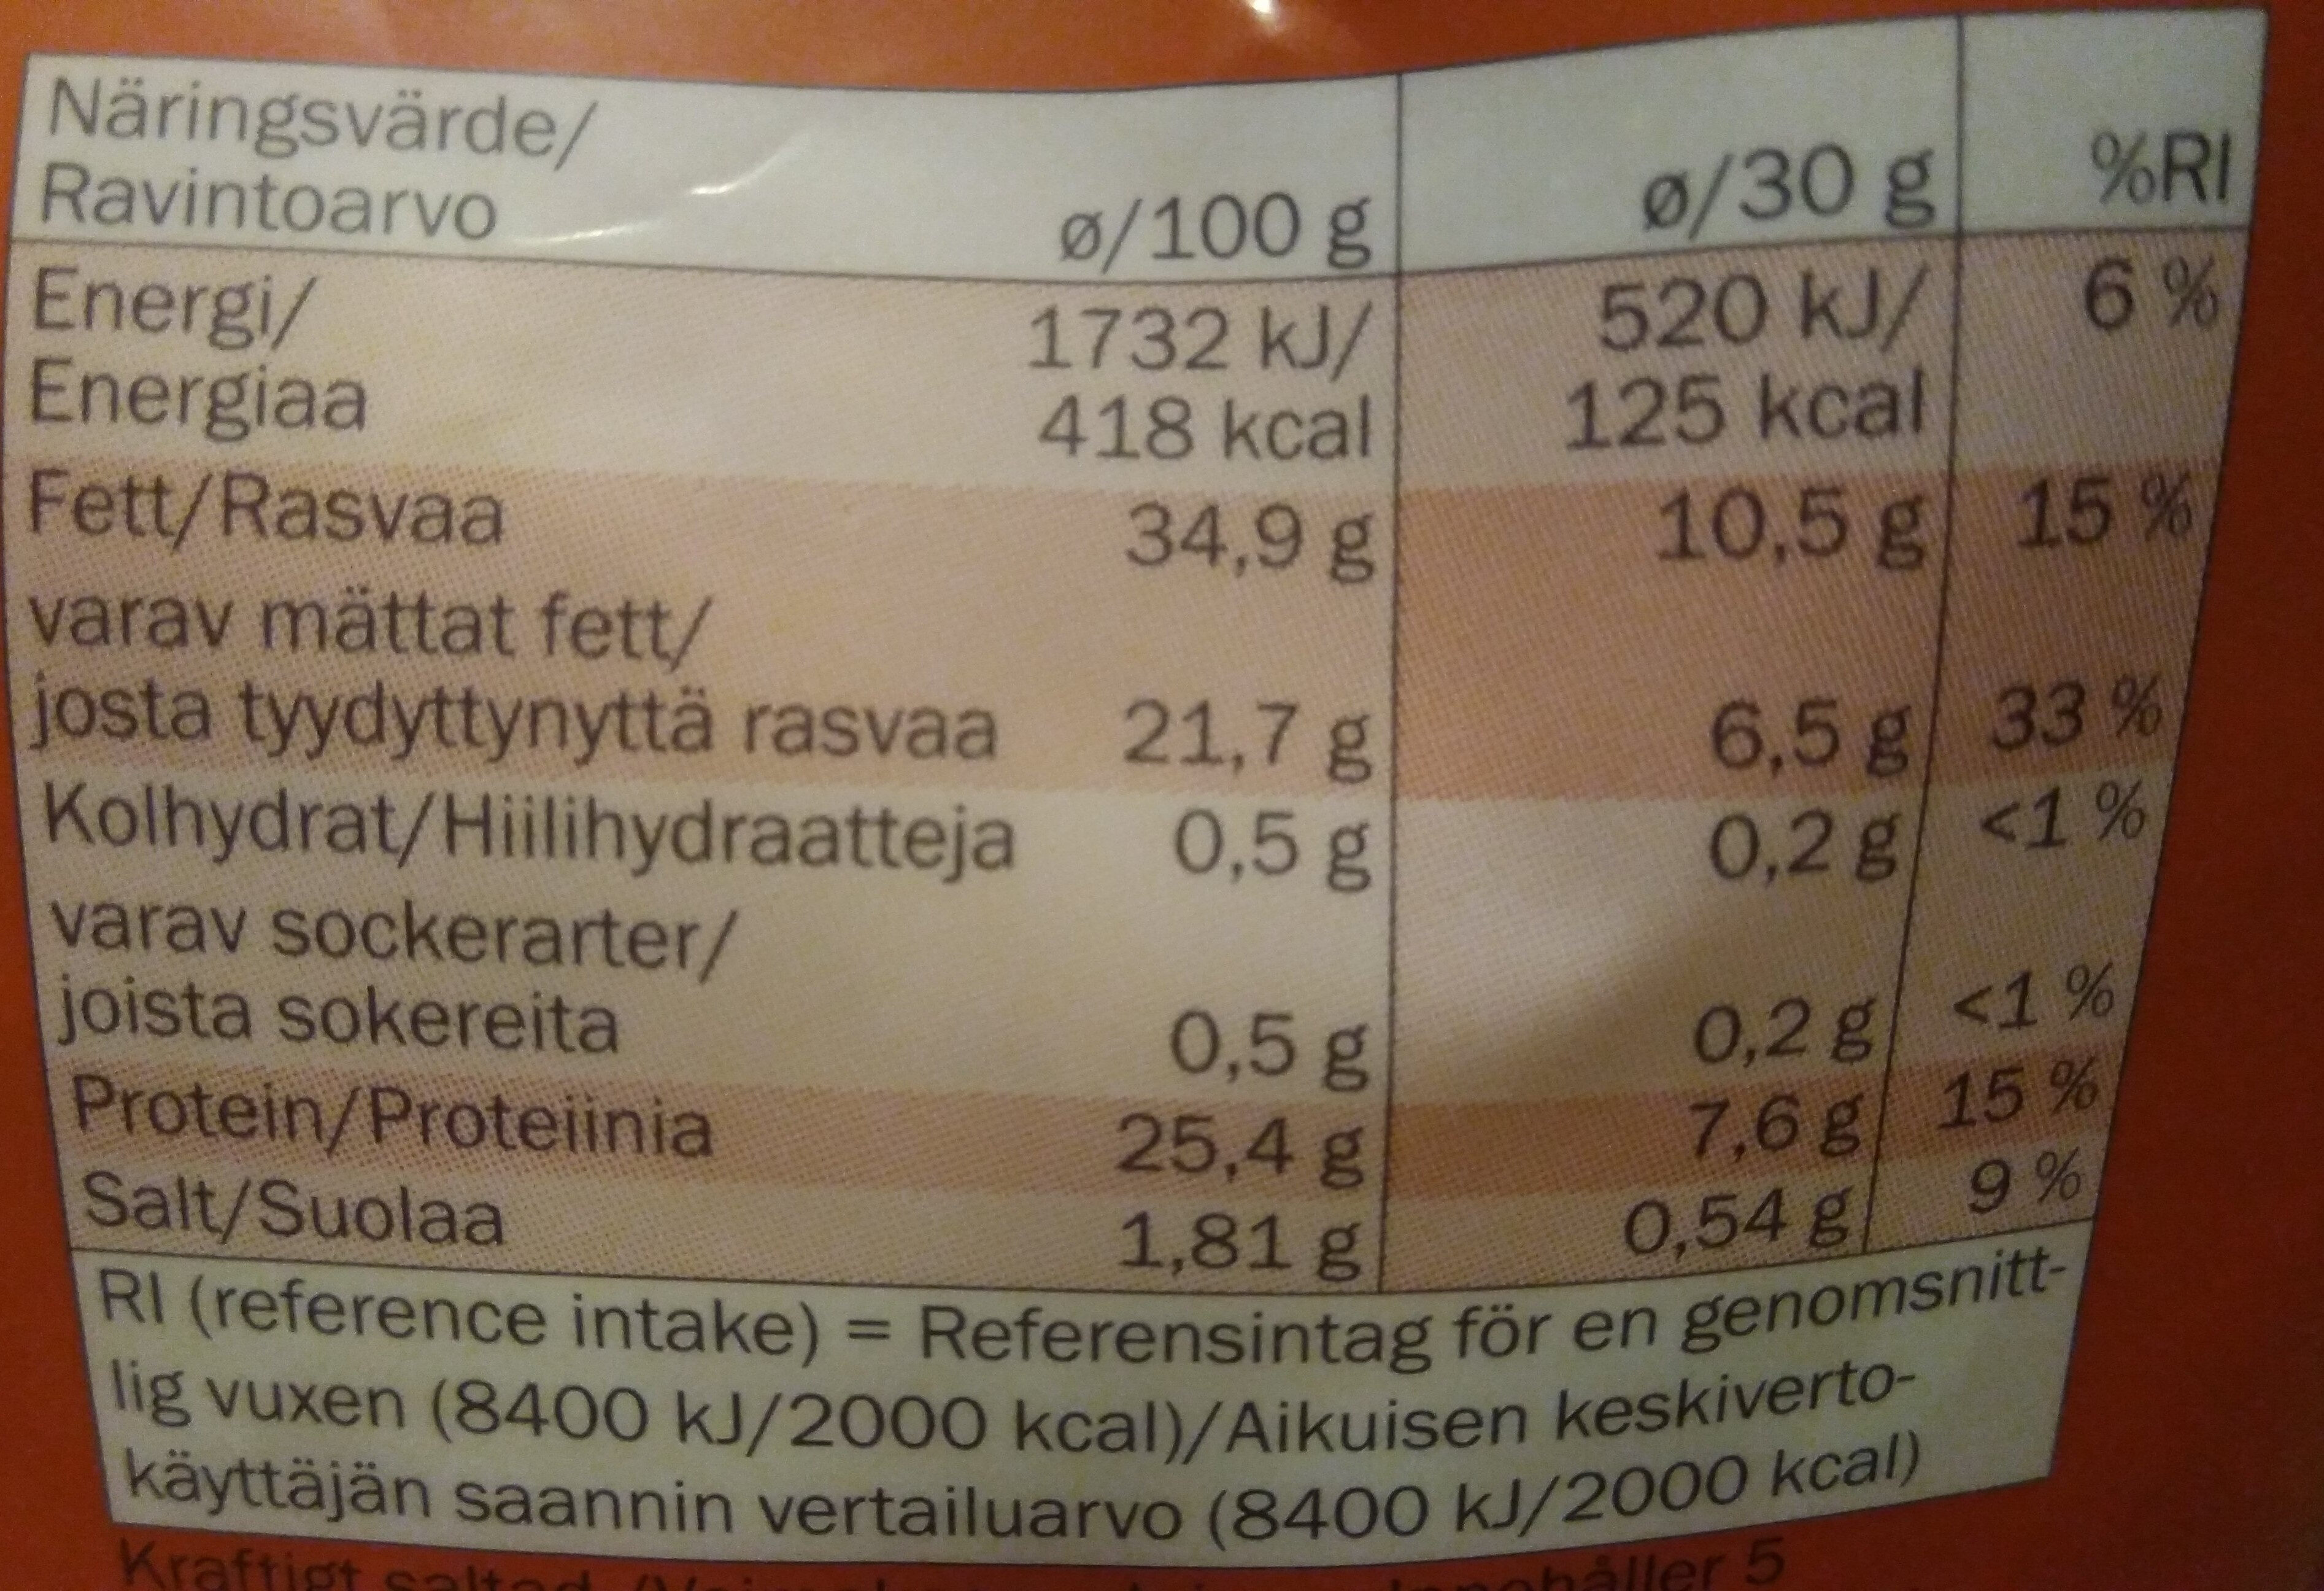 Mature Grated Cheddar - Nutrition facts